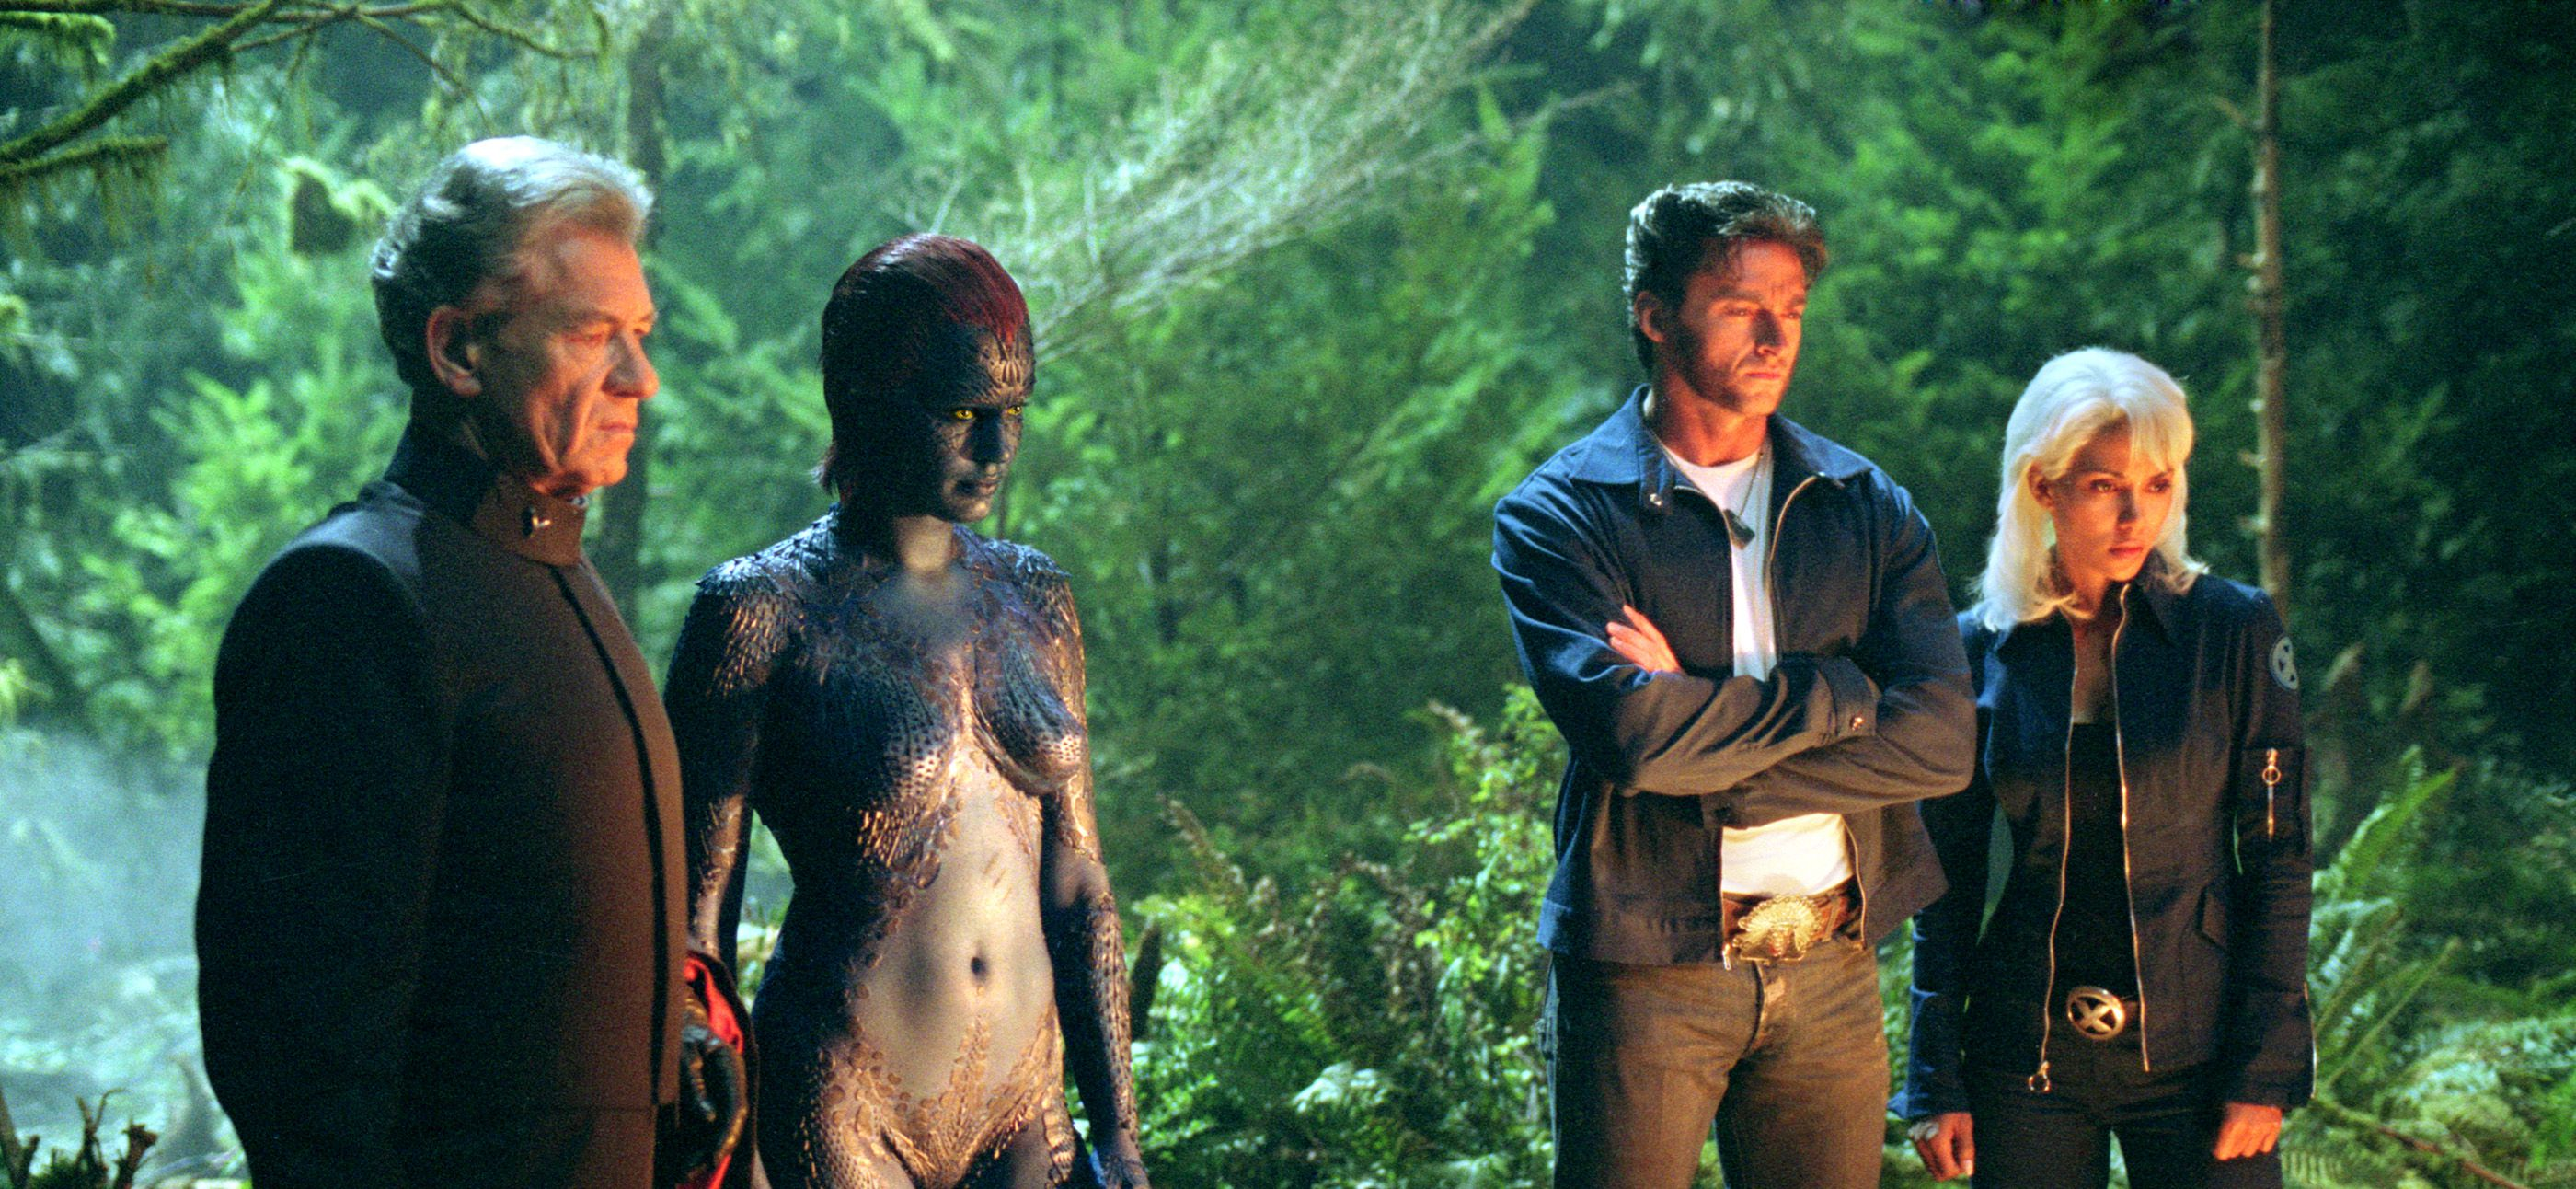 An image from X2: X-Men United